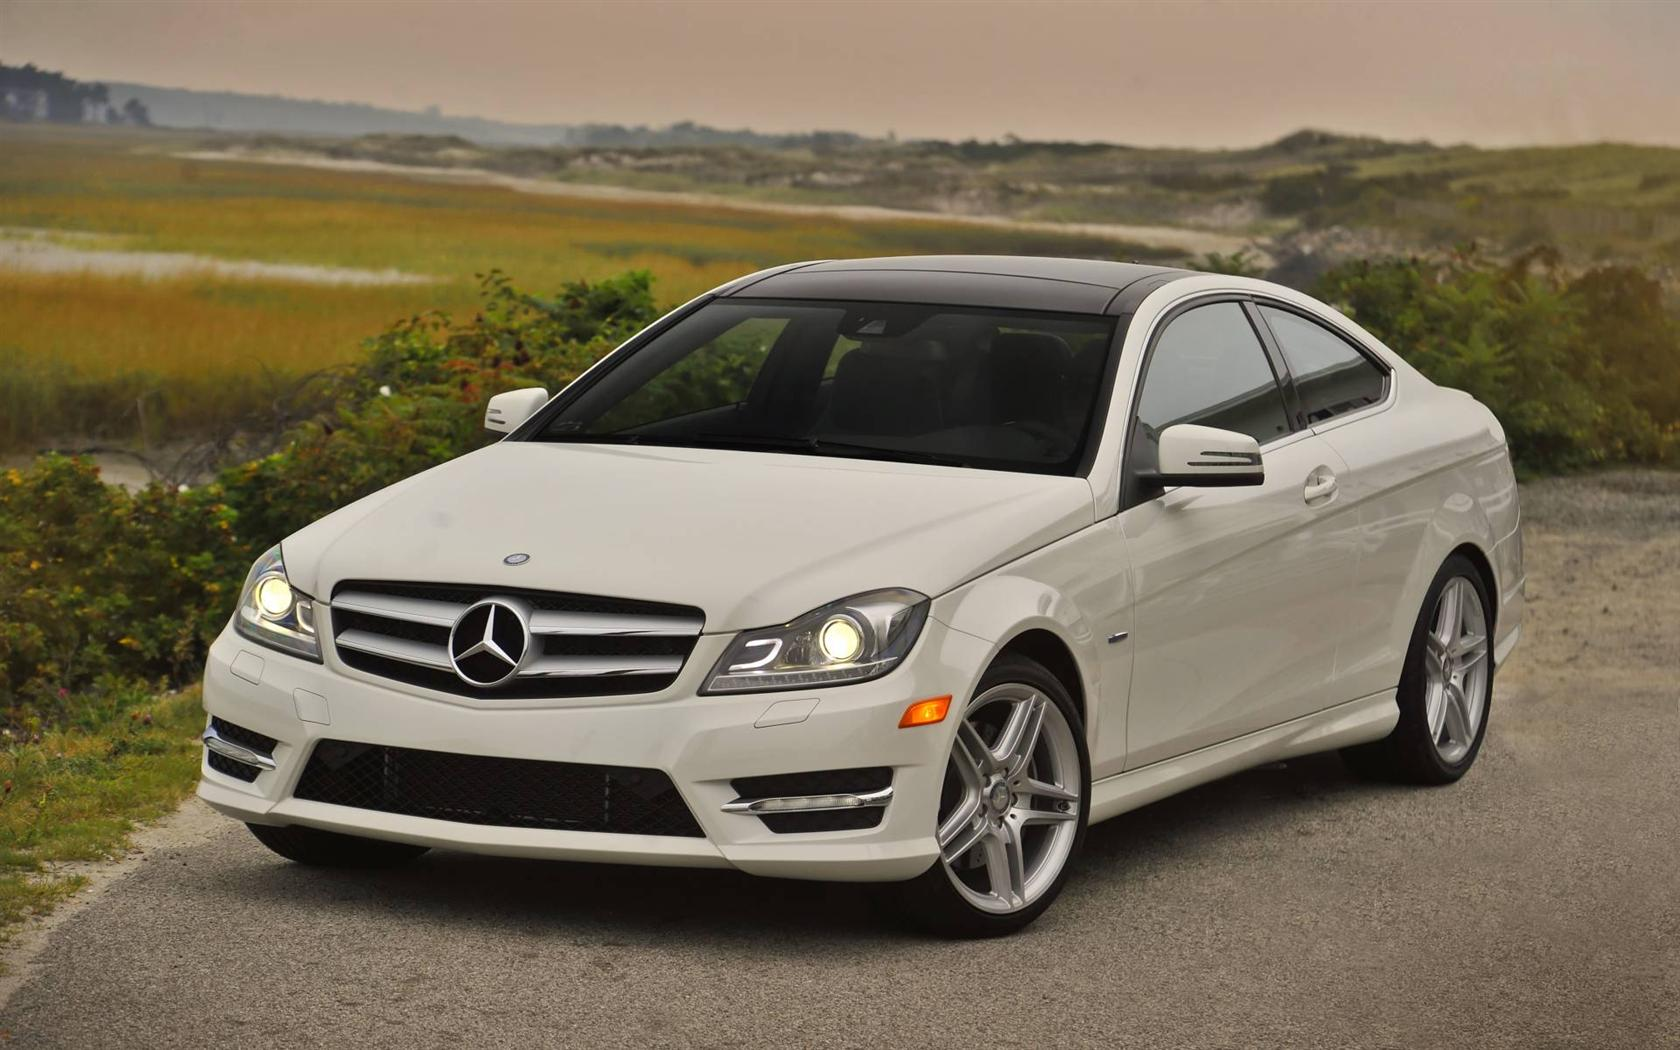 2013 Mercedes Benz C Class Information And Photos